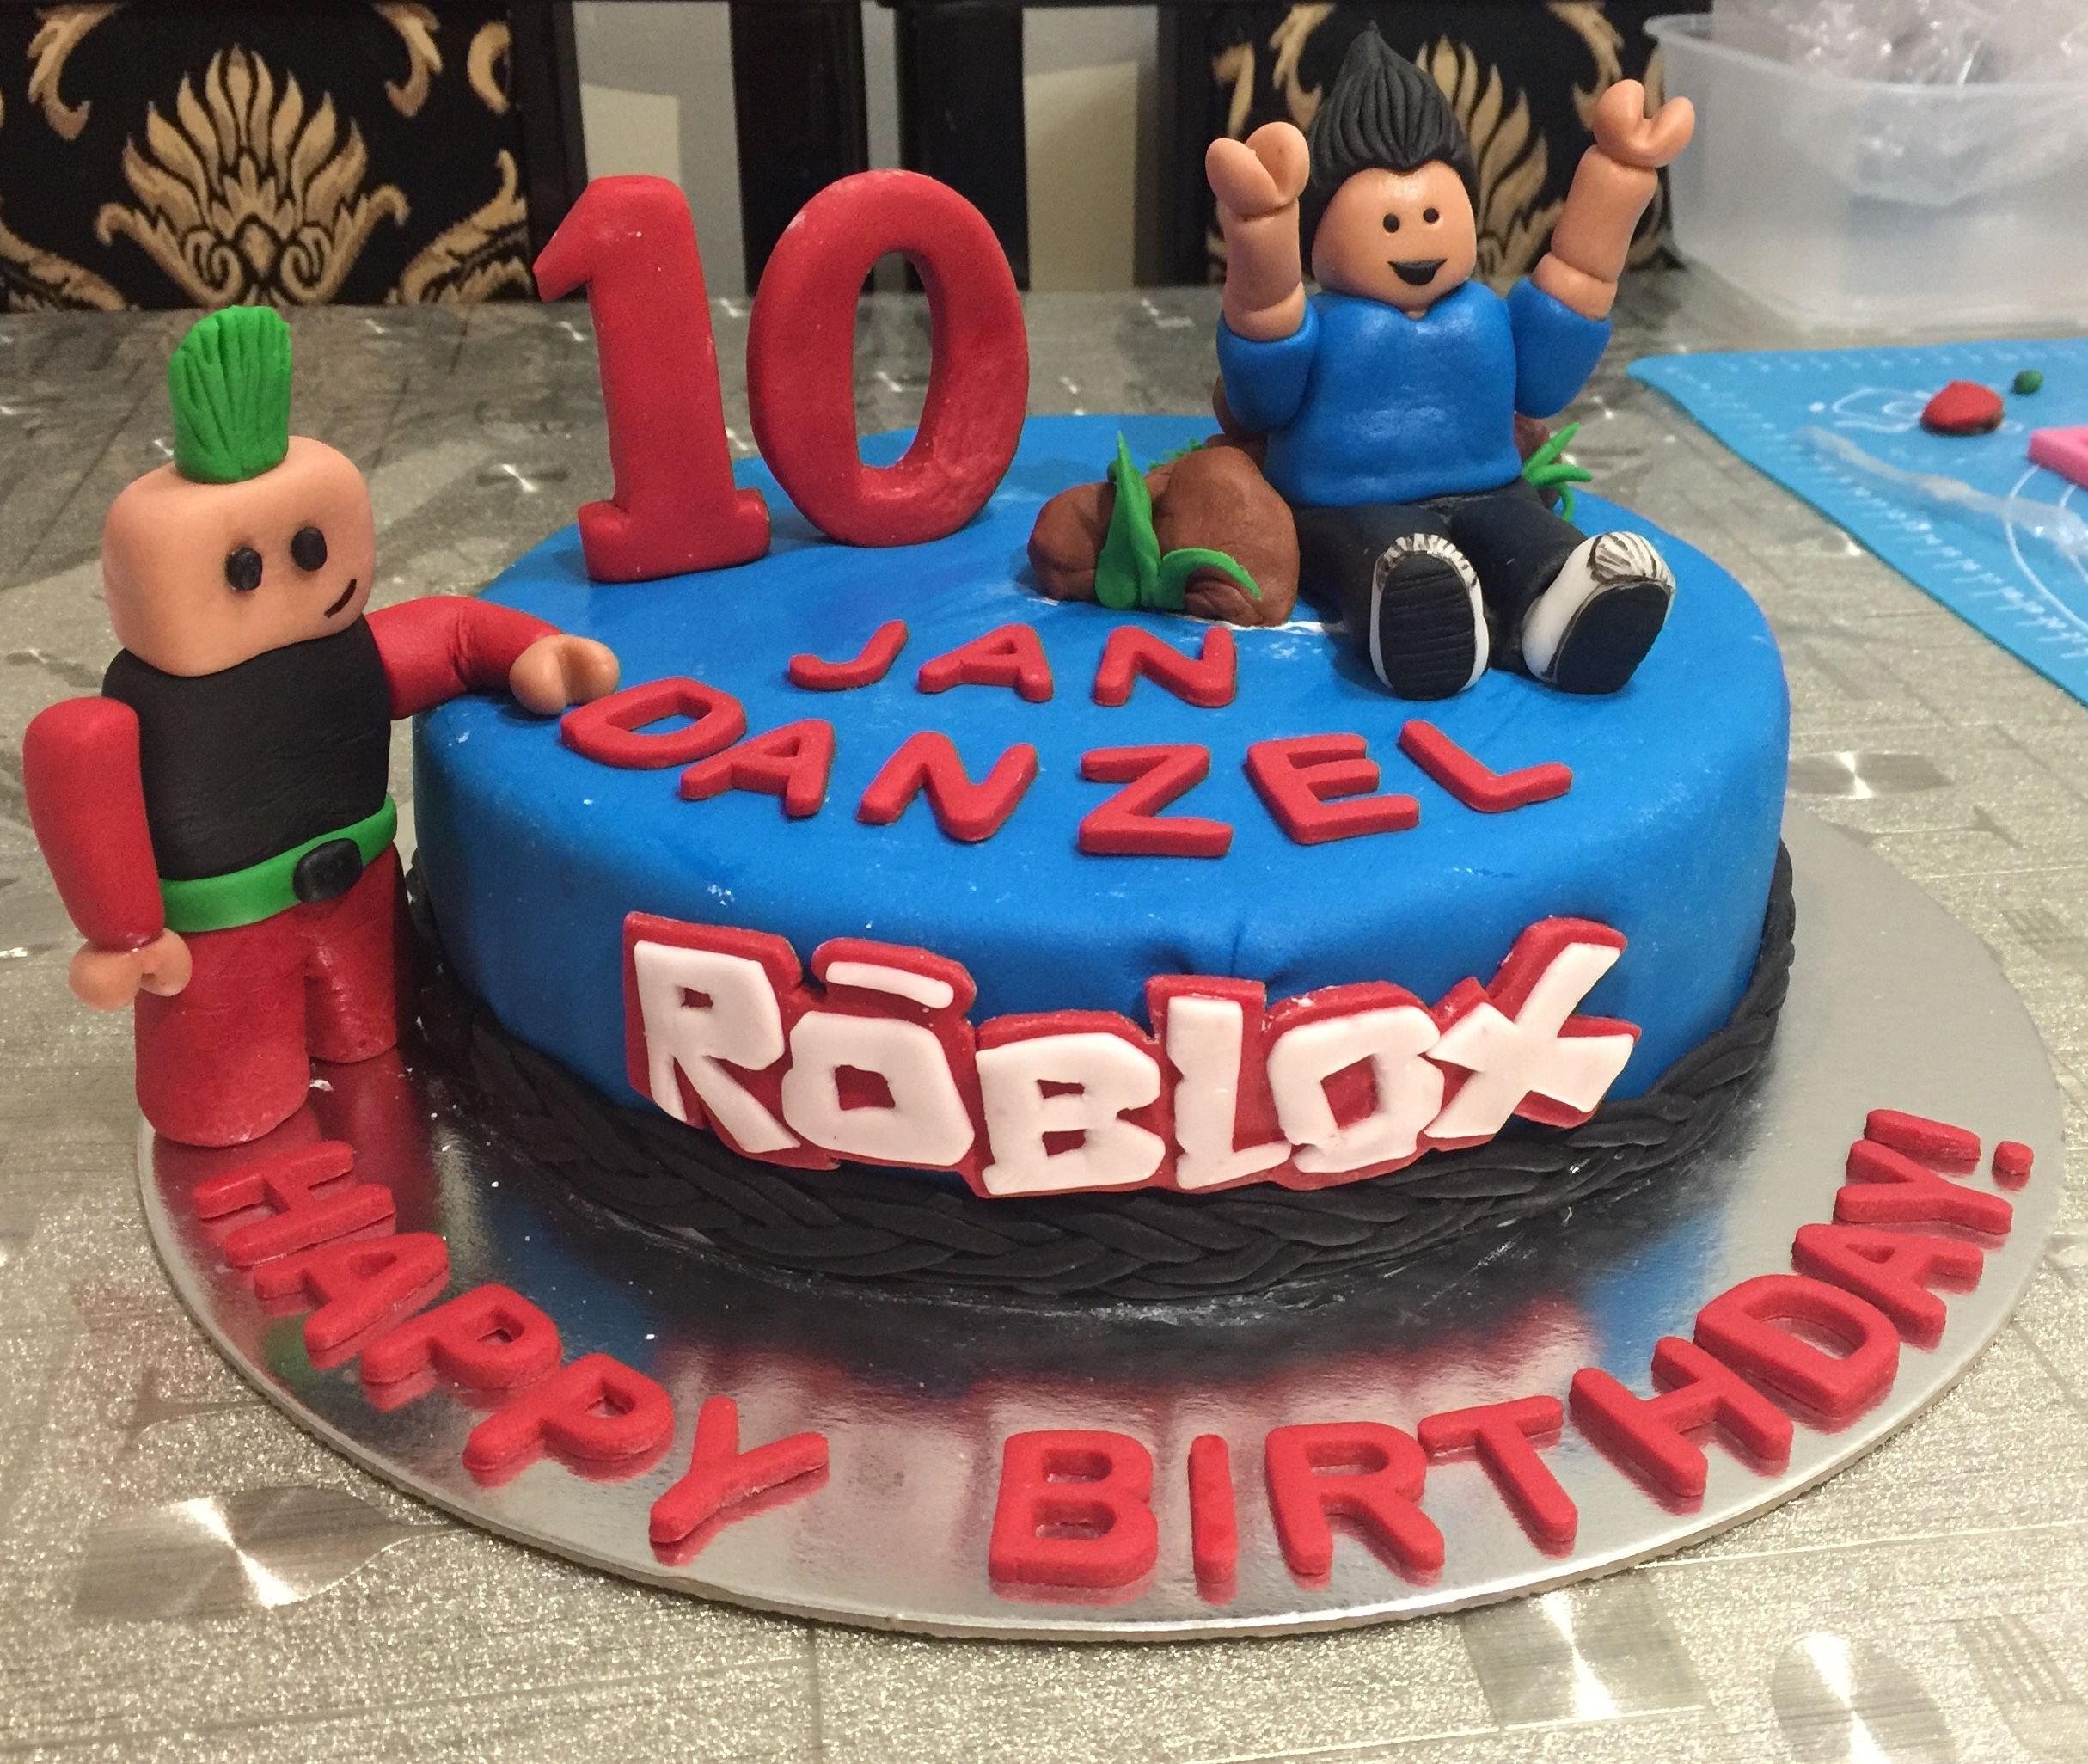 Roblox Themed Cake Roblox Birthday Cake Roblox Cake Cupcake